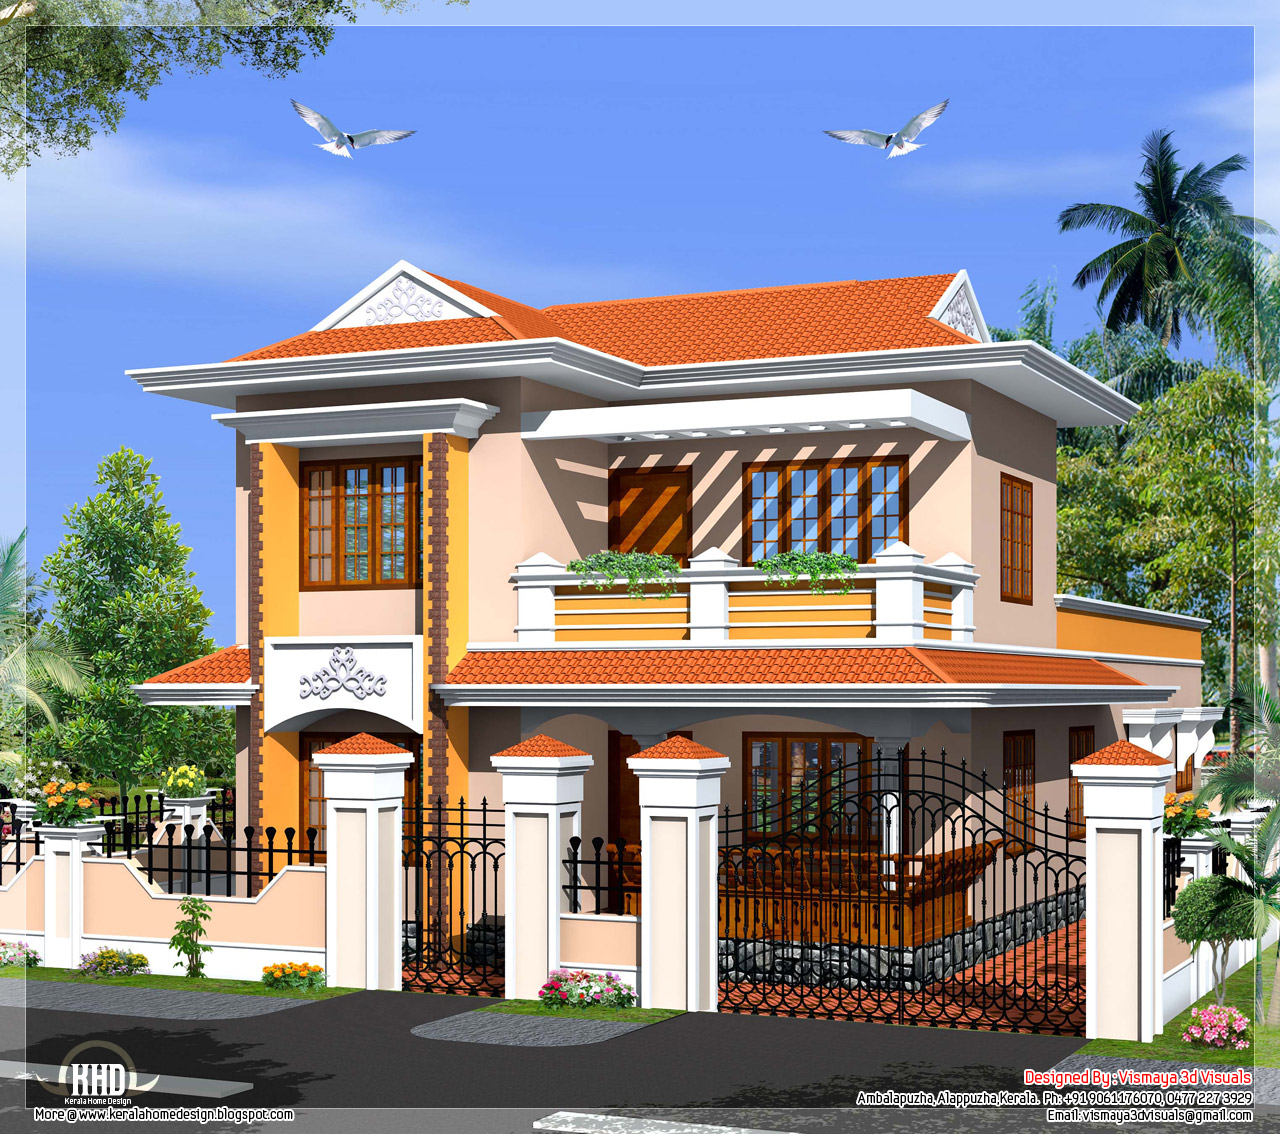 Kerala Model Villa. Facilities In This House